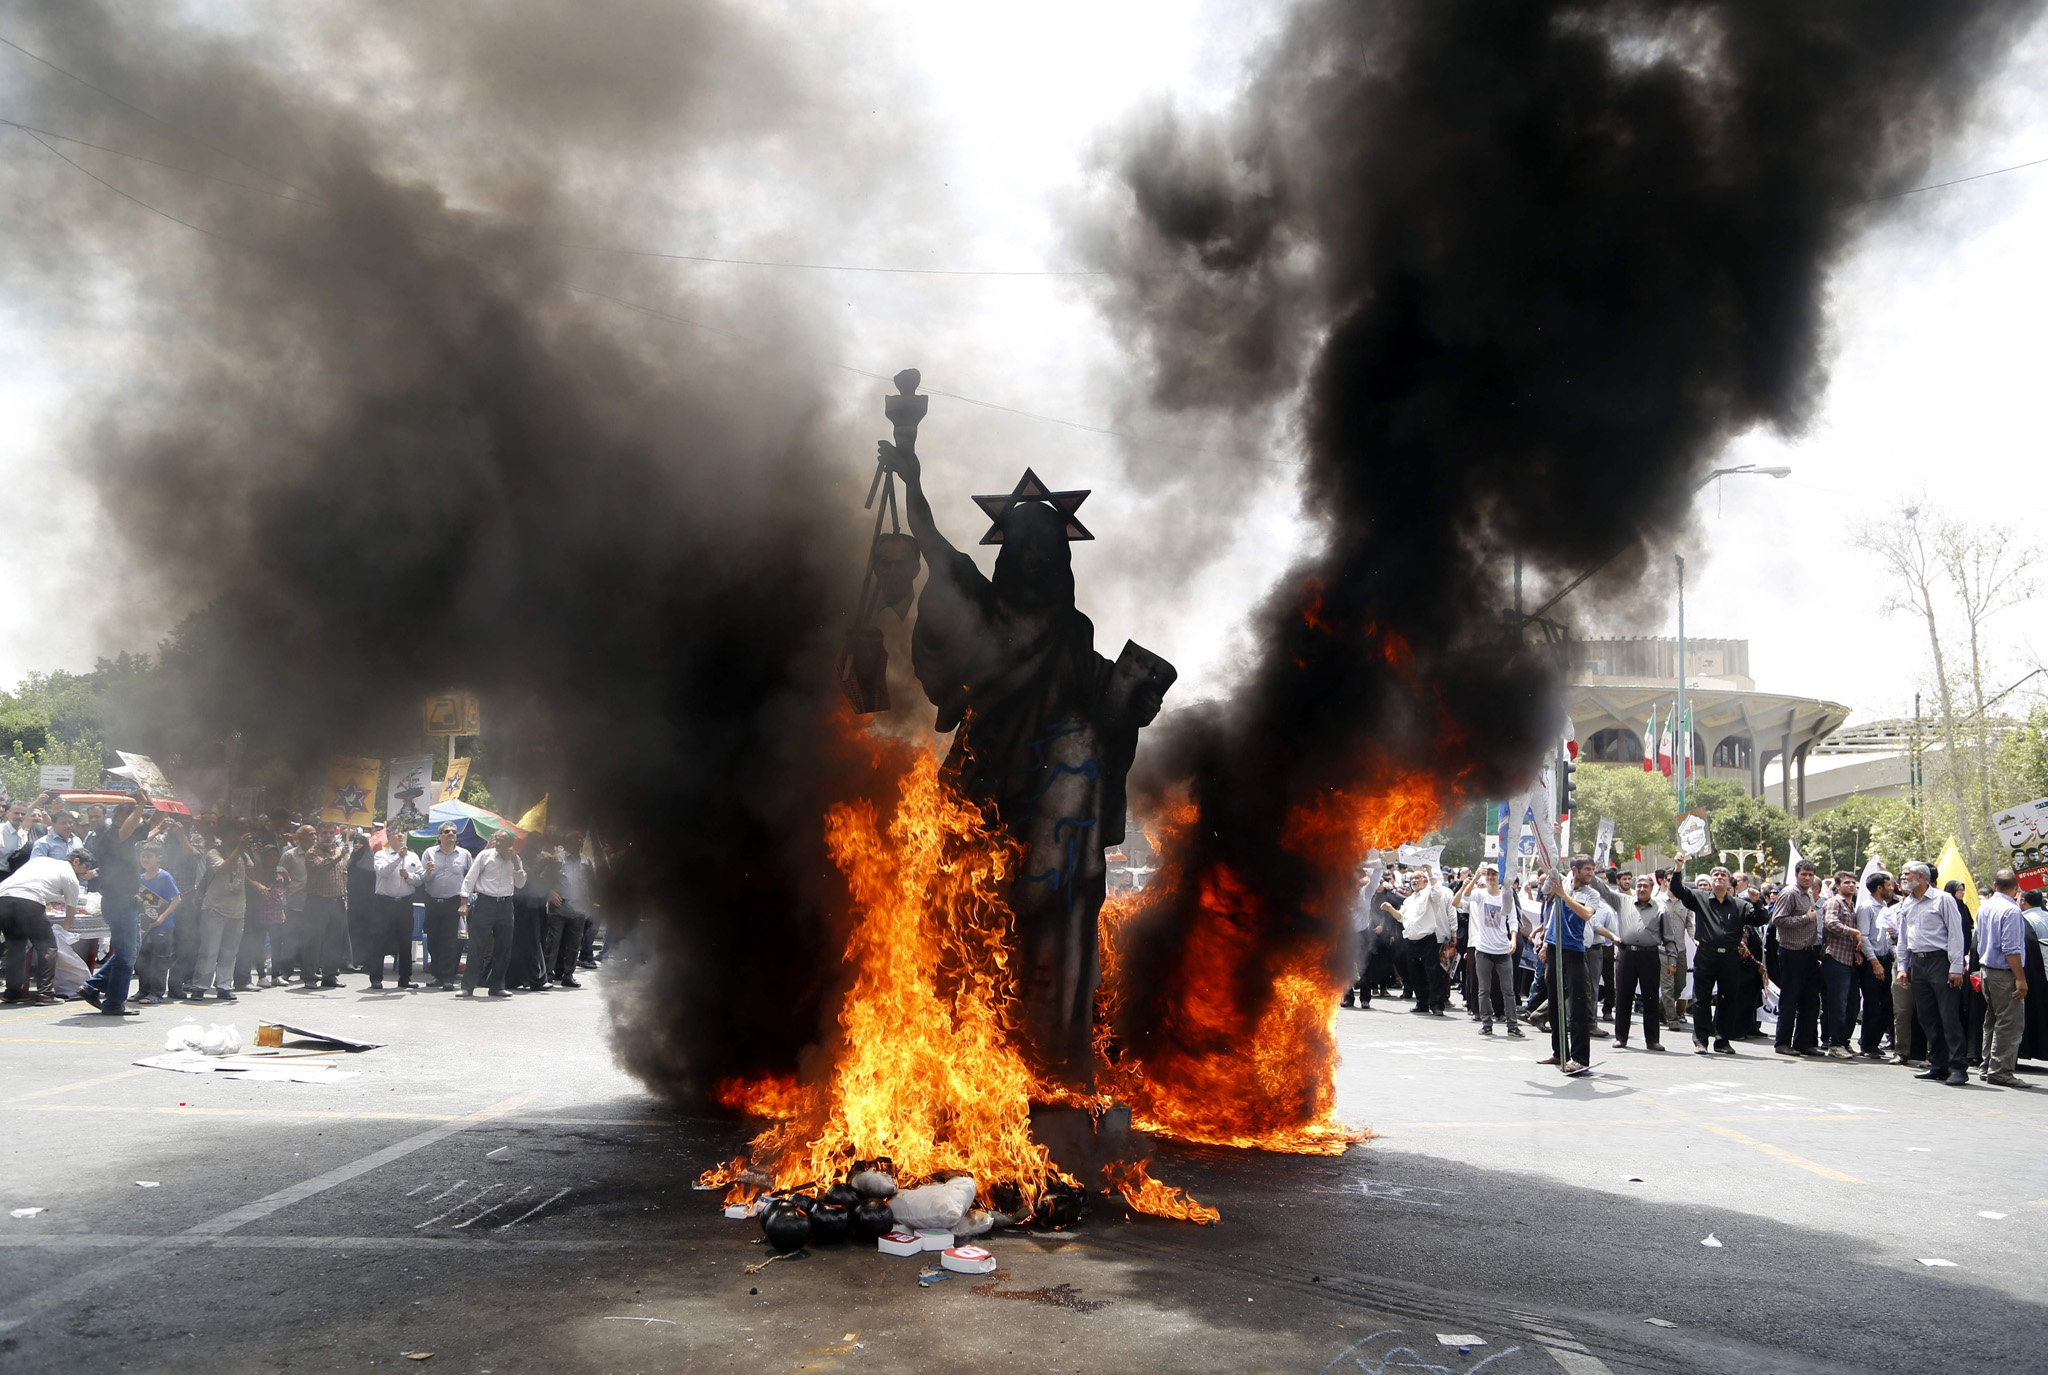 TOPSHOT - A statue depicting US' Statue of Liberty decorated with a Star of David on its head is set ablaze by Iranian protestors during a parade marking al-Quds (Jerusalem) Day in Tehran on July 1, 2016. Tens of thousands joined pro-Palestinian rallies in Tehran, as the annual Quds Day protests take on broader meaning for a region mired in bitter disputes and war.    / AFP PHOTO / ATTA KENAREATTA KENARE/AFP/Getty Images